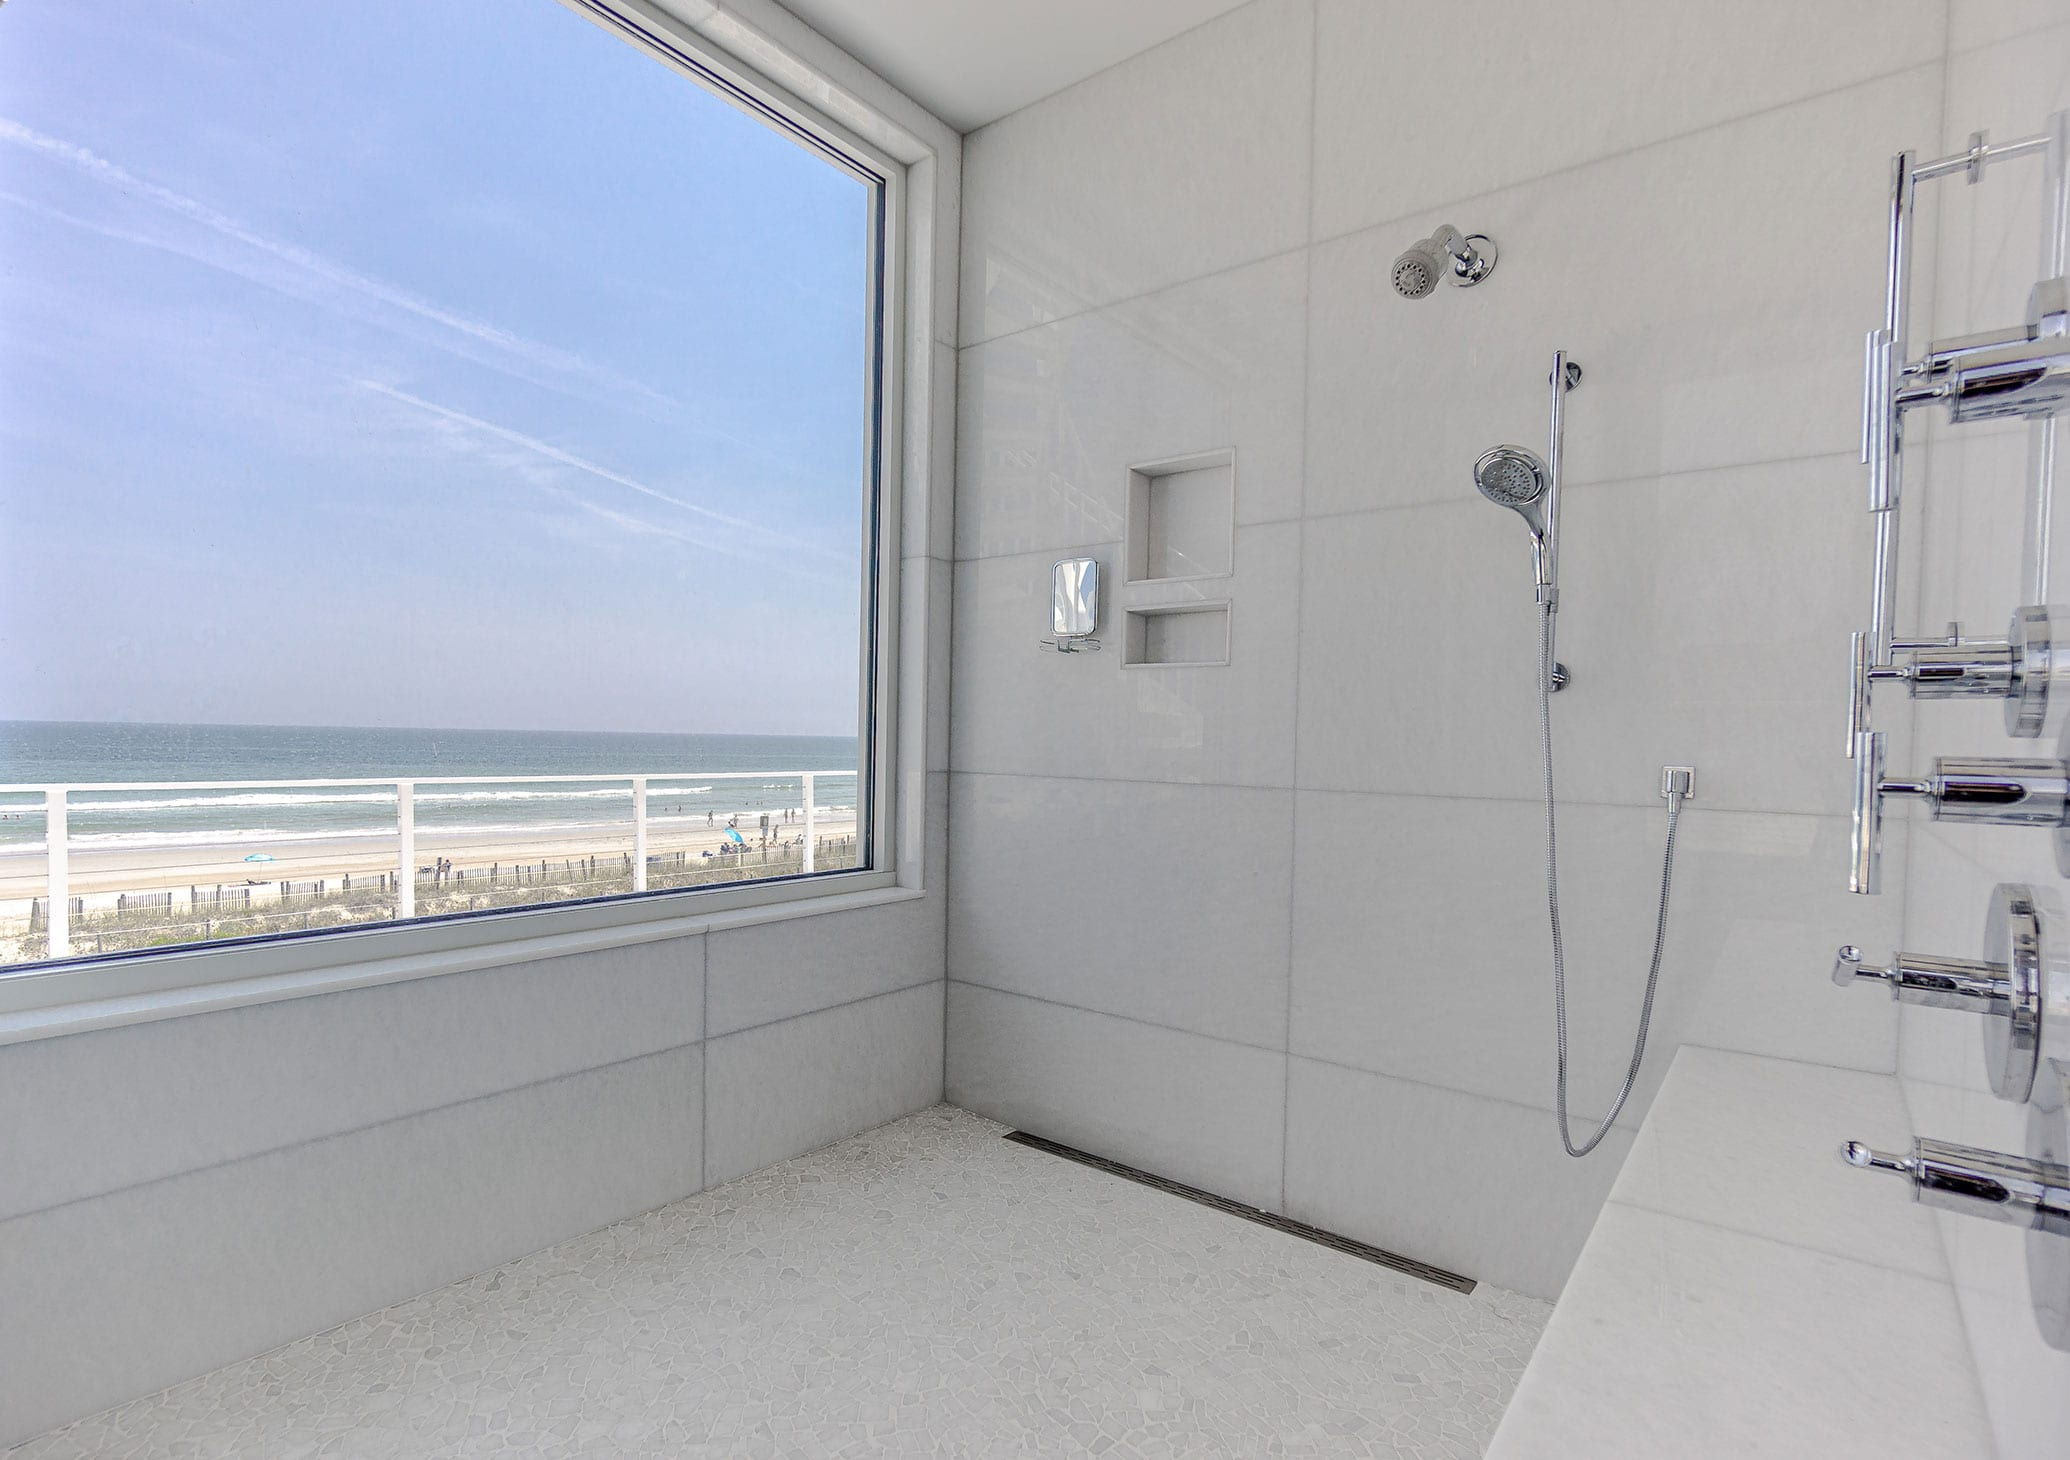 Stoneline-Group-Diamond-White-Marble-Florida-Marble-Collection-Marble-Tile-Shower-Design-1